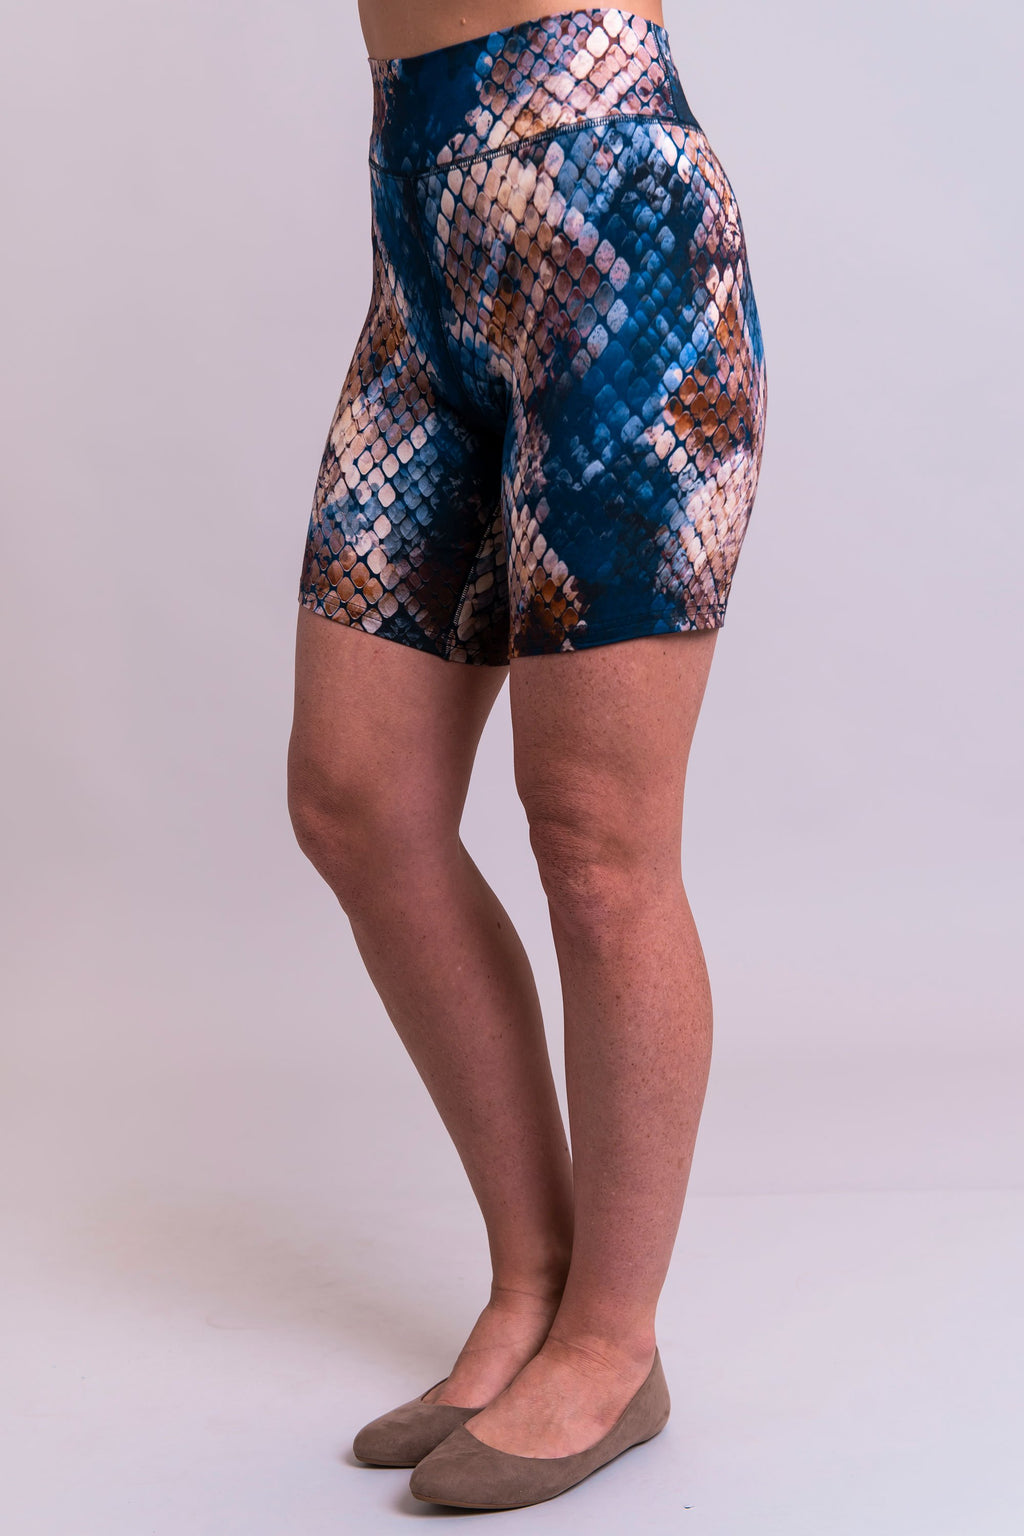 Hallie Undershorts, Snakeskin, Bamboo - Blue Sky Clothing Co